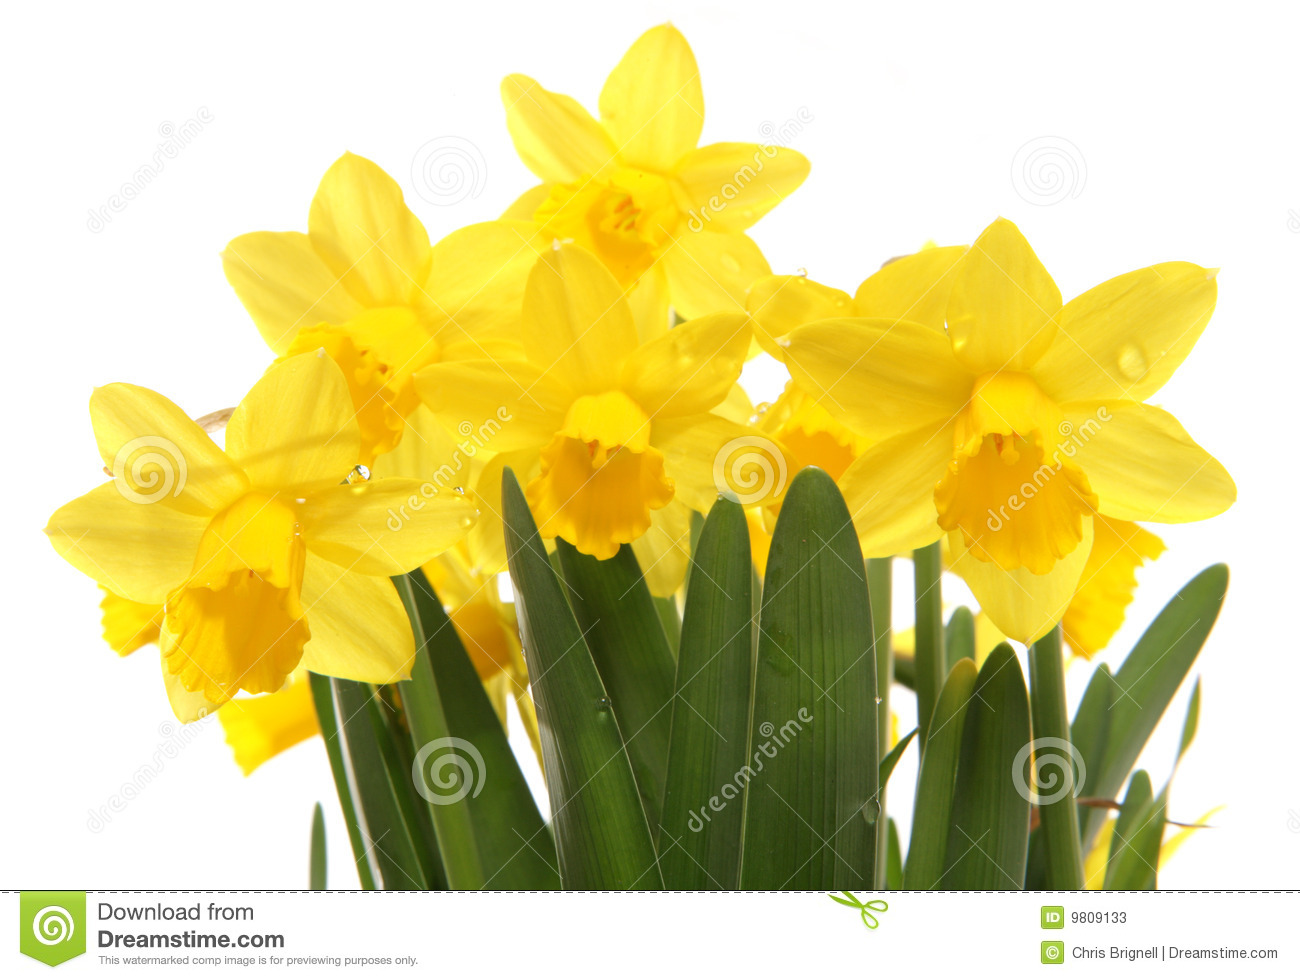 Spring Daffodils Cutout In A Studio Stock Image - Image of